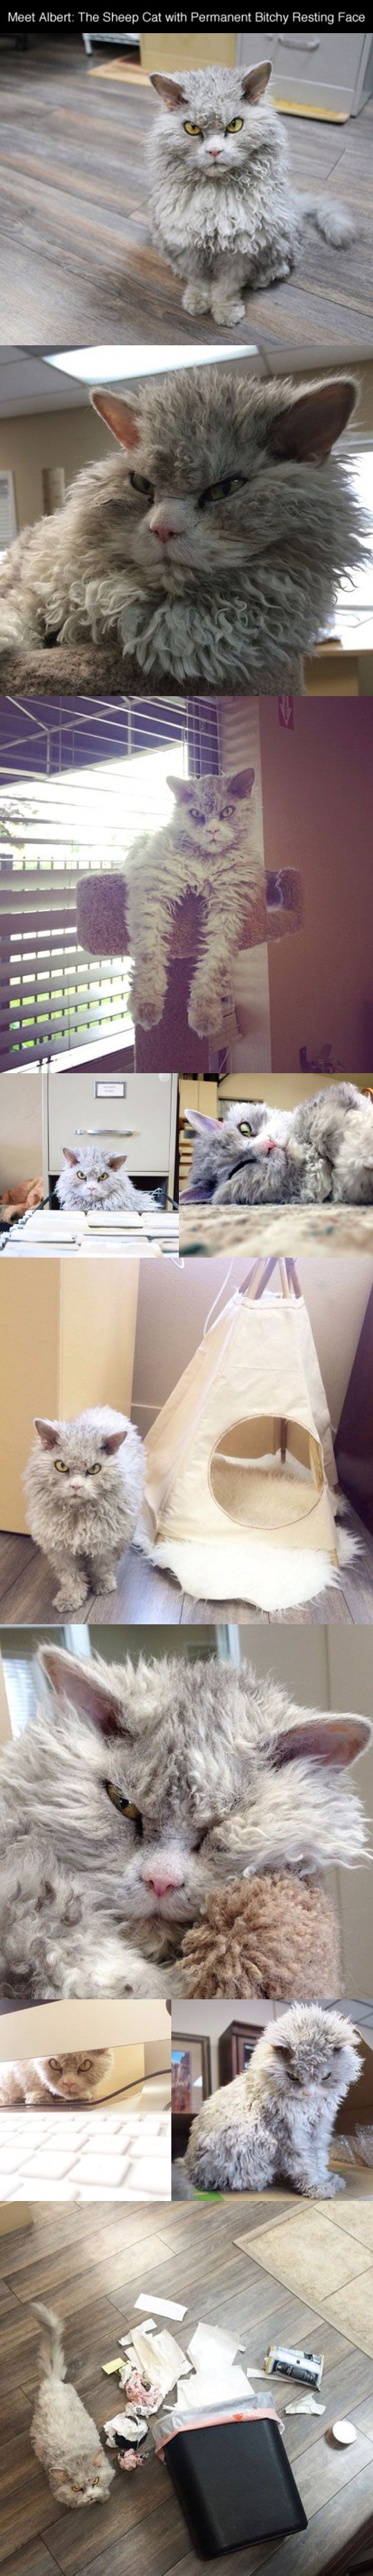 So freaking cute!: Cats, Funny, Crazy Cat, Bitchy Resting Face, Grumpy Cat, Kitty, Animal, Cat Lady